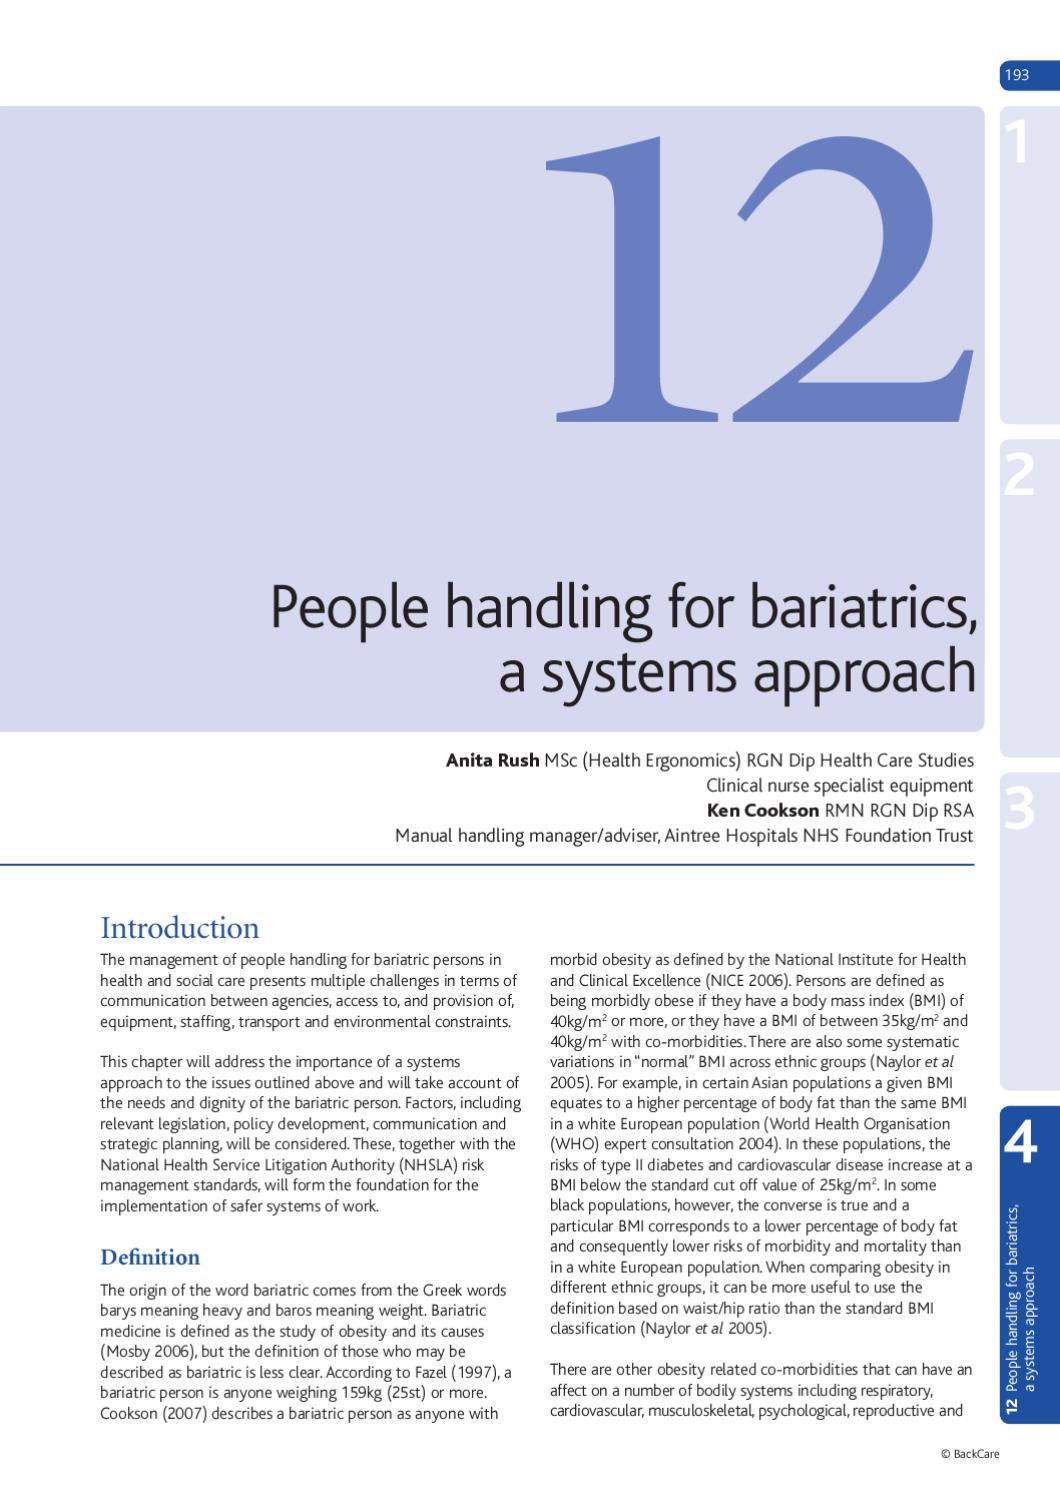 Handling of People, 6th Edition Preview by BackCare - issuu